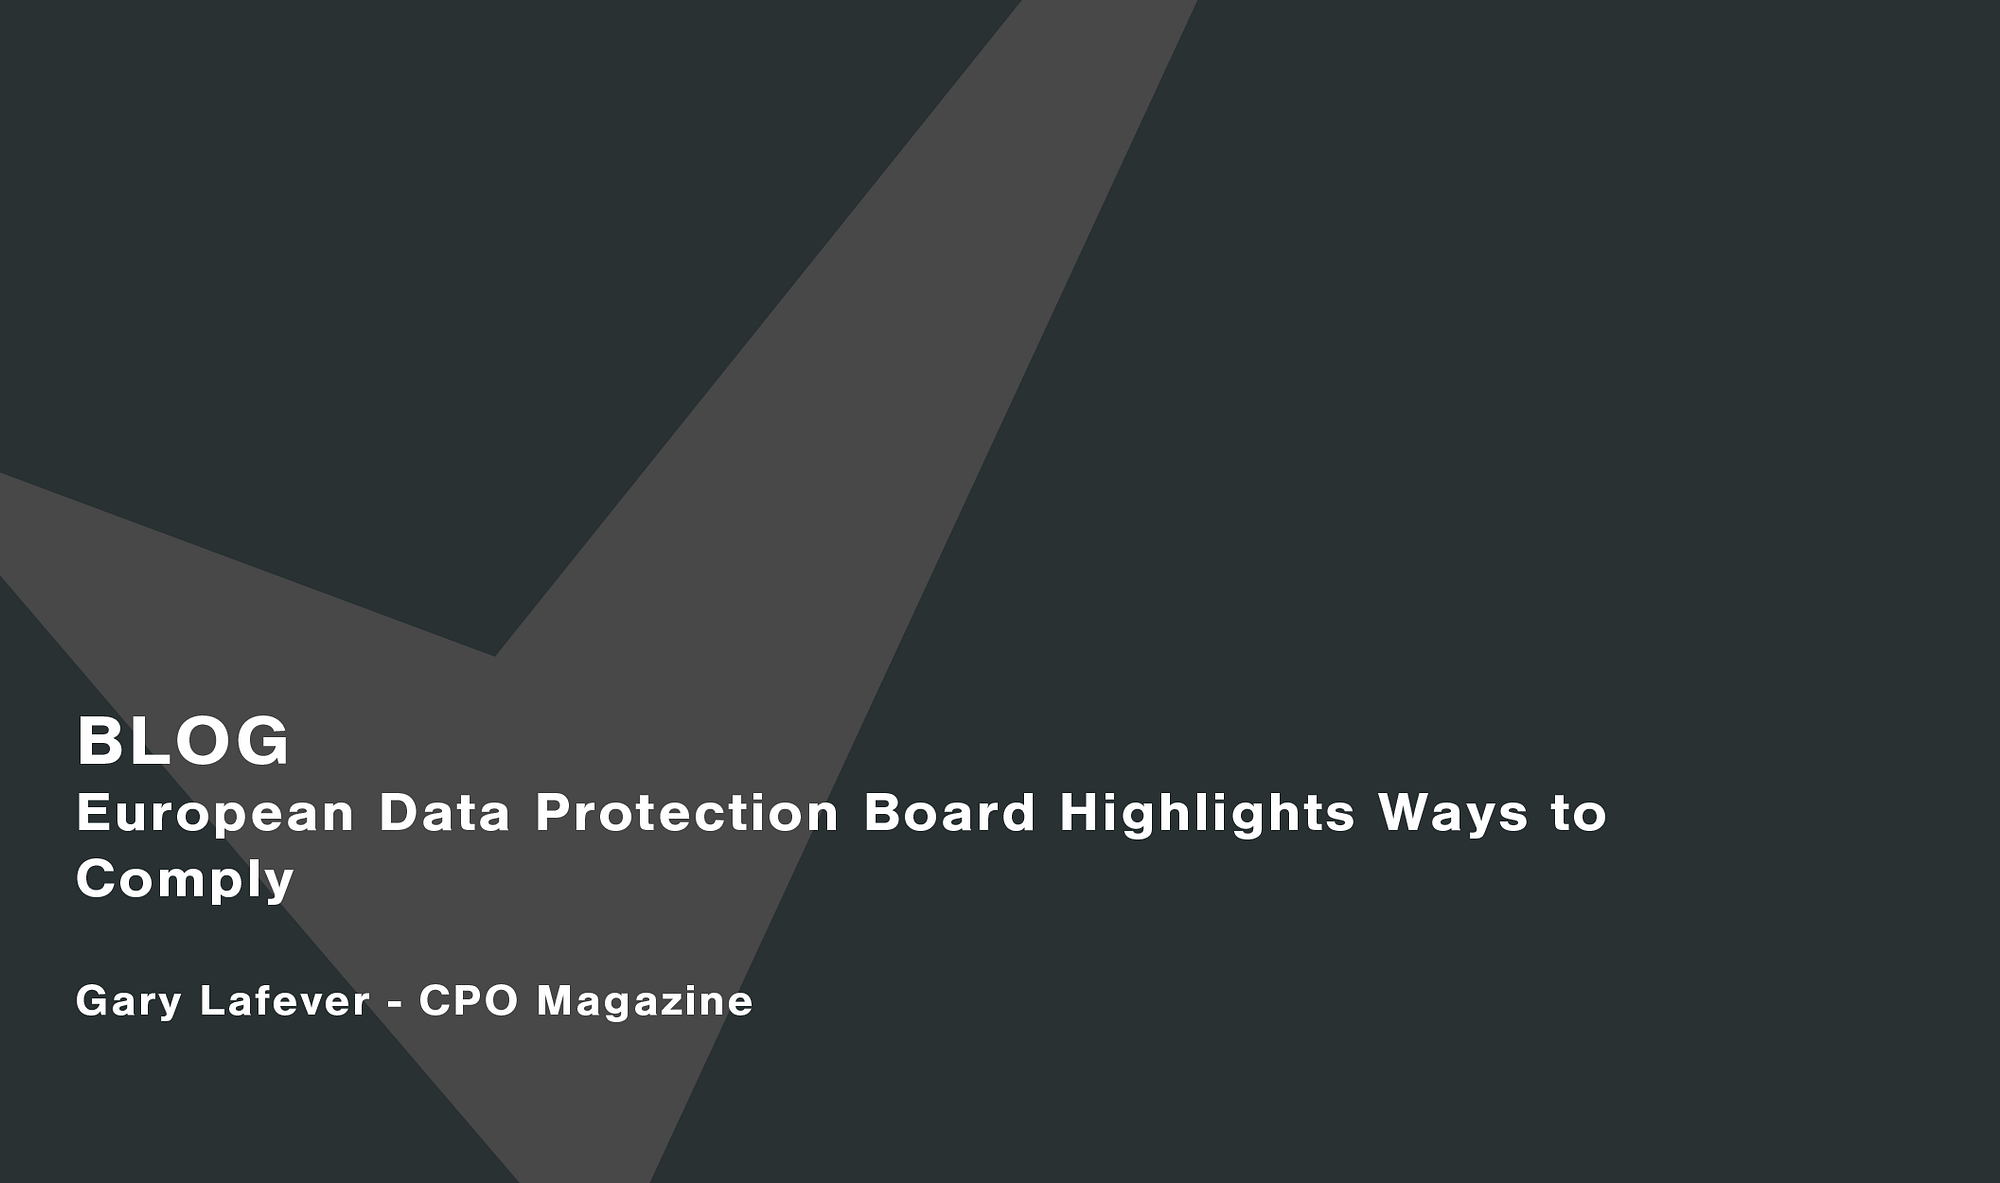 European-Data-Protection-Board-Highlights-Ways-to-Comply